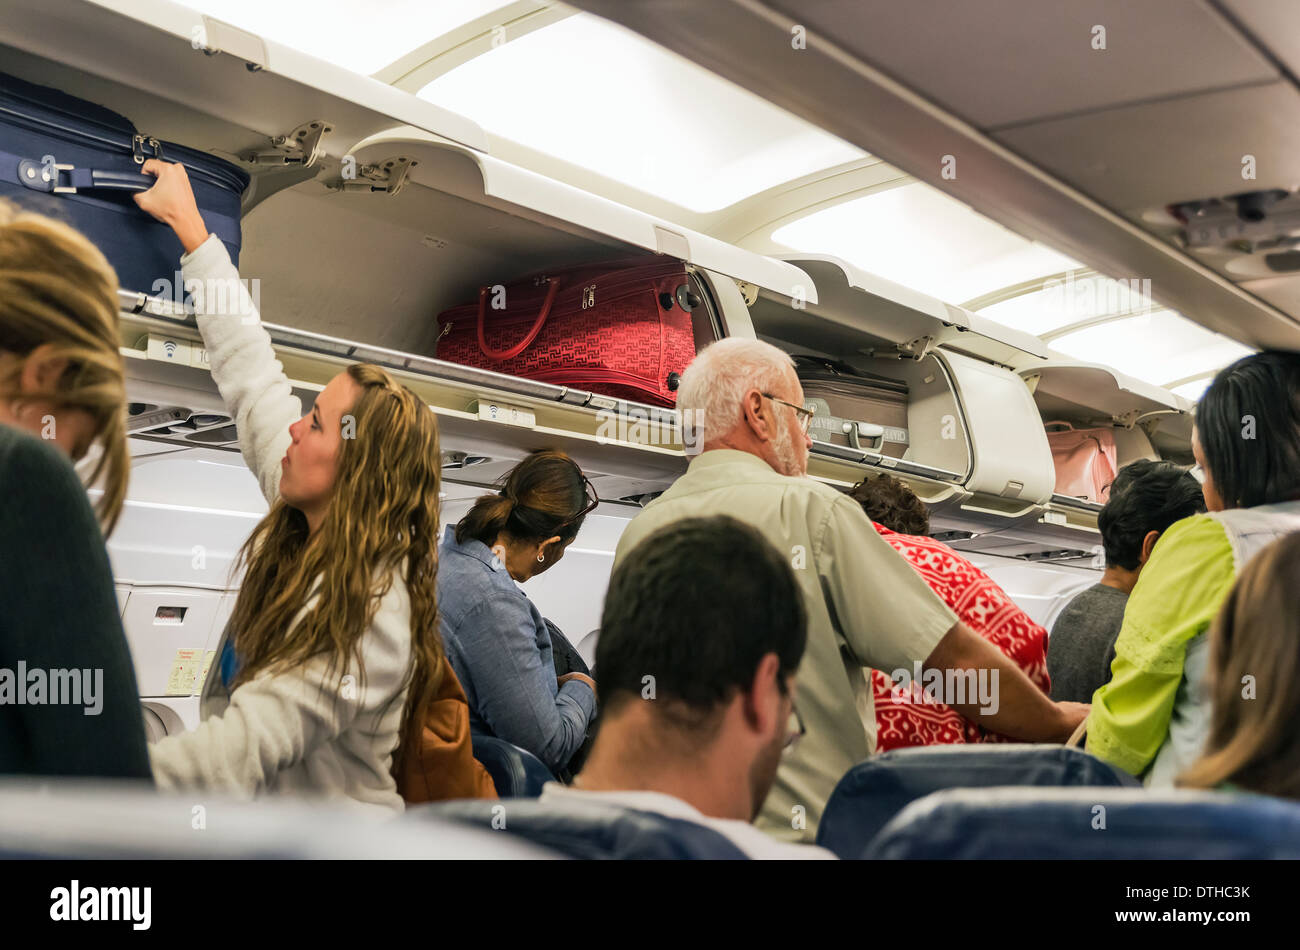 Airline travelers retieve their carry-on luggage from overhead compartments. - Stock Image